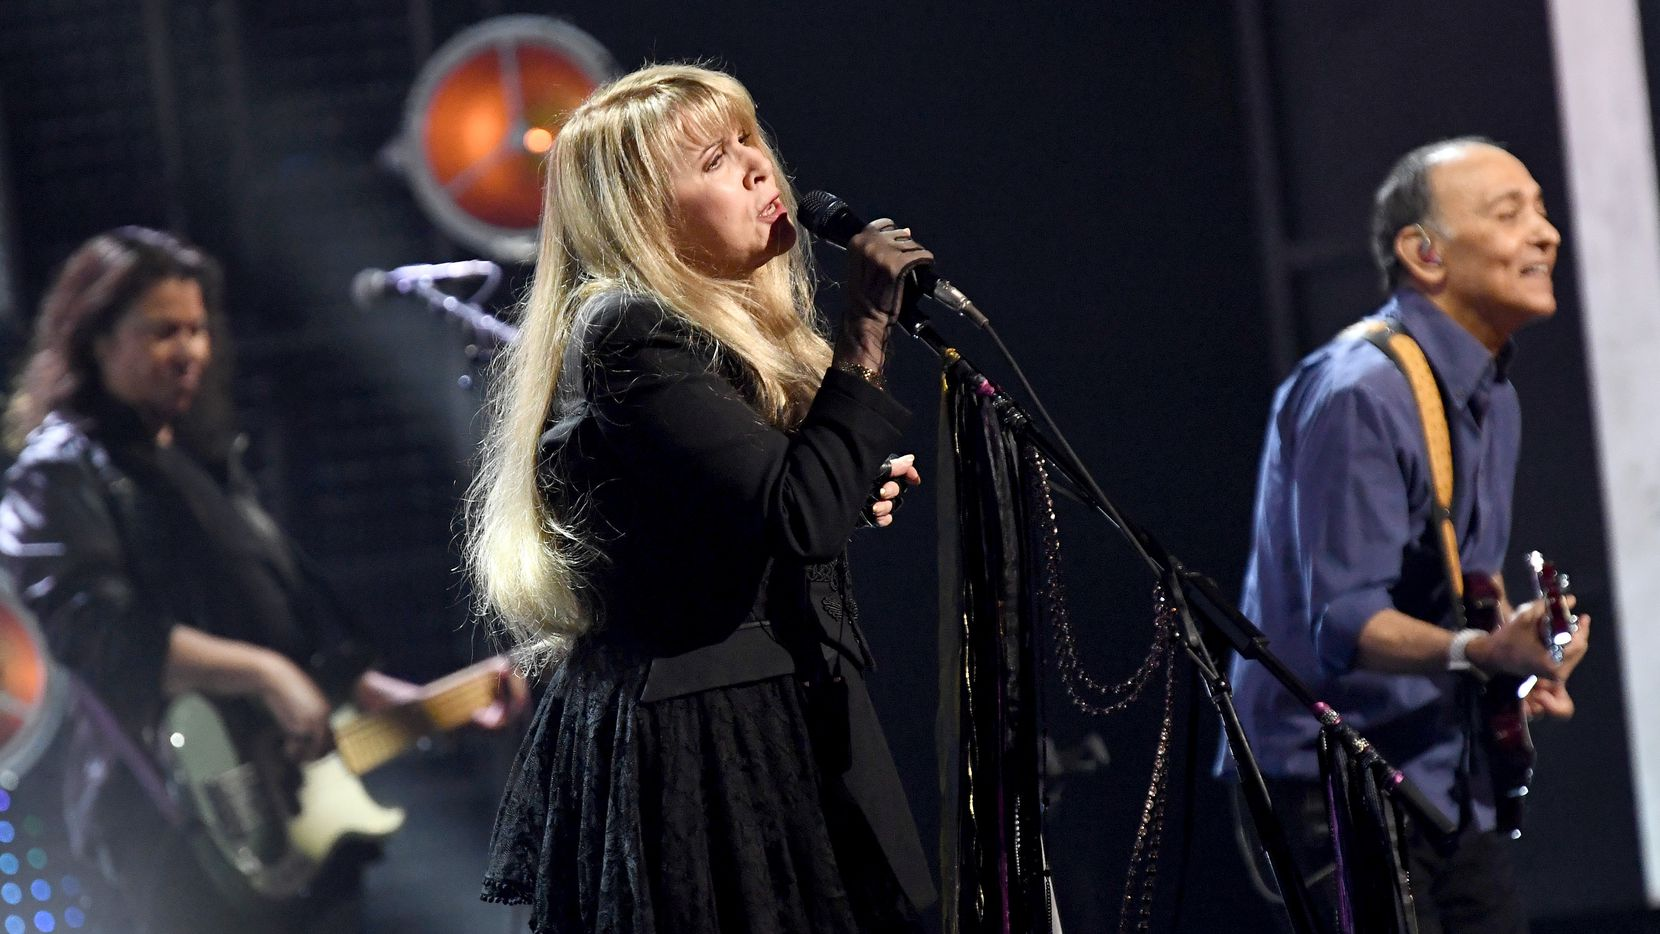 La cantante Stevie Nicks ingresó al Salón de la Fama del Rock & Roll en 2019.